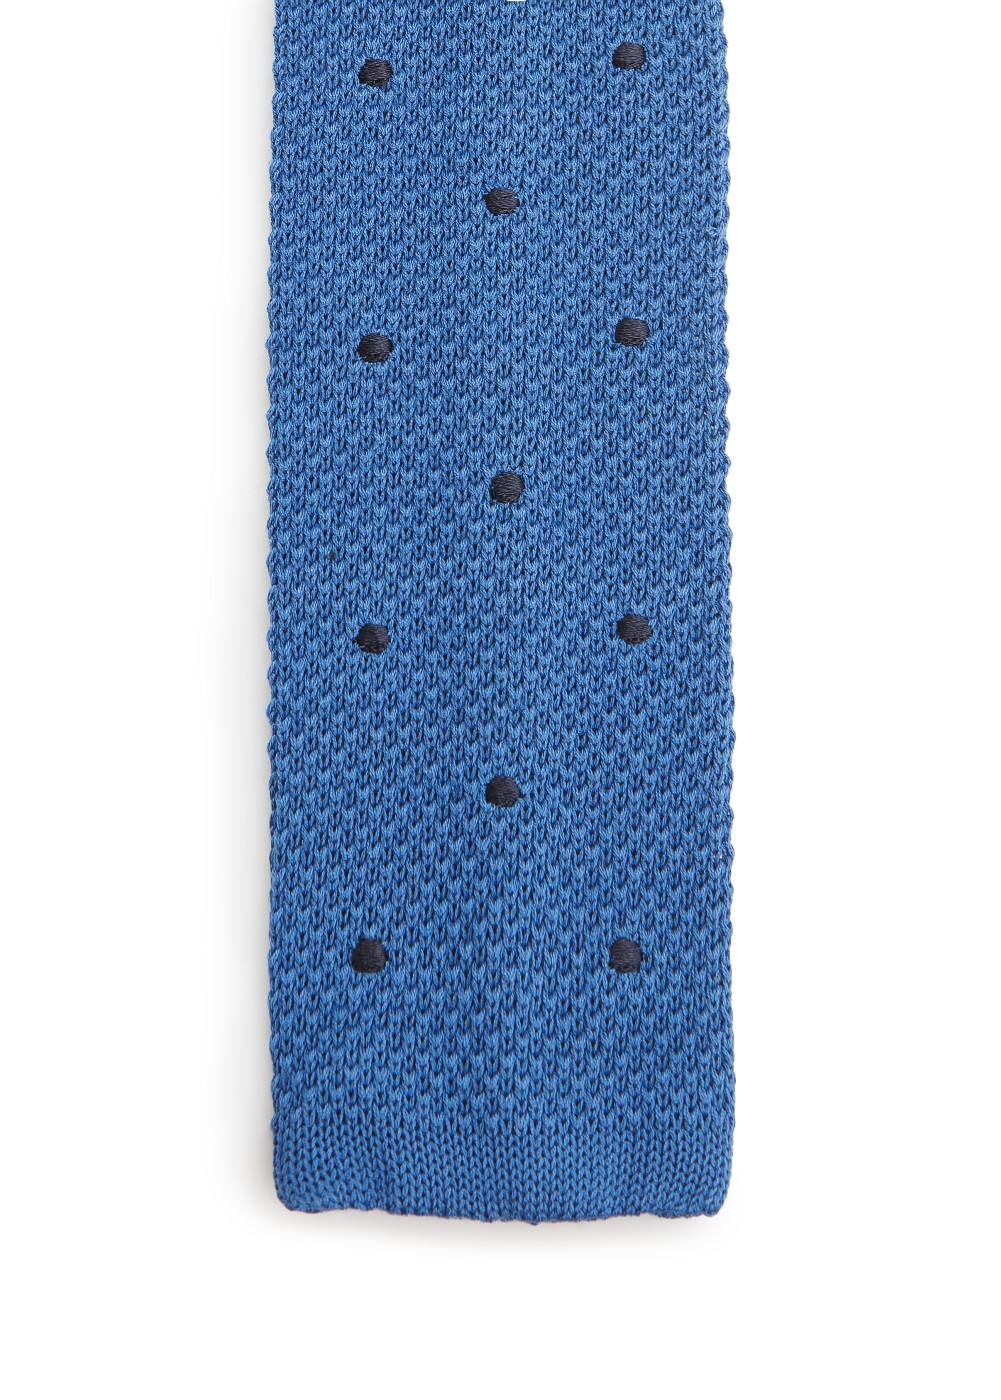 Polka-dot patterned knit tie